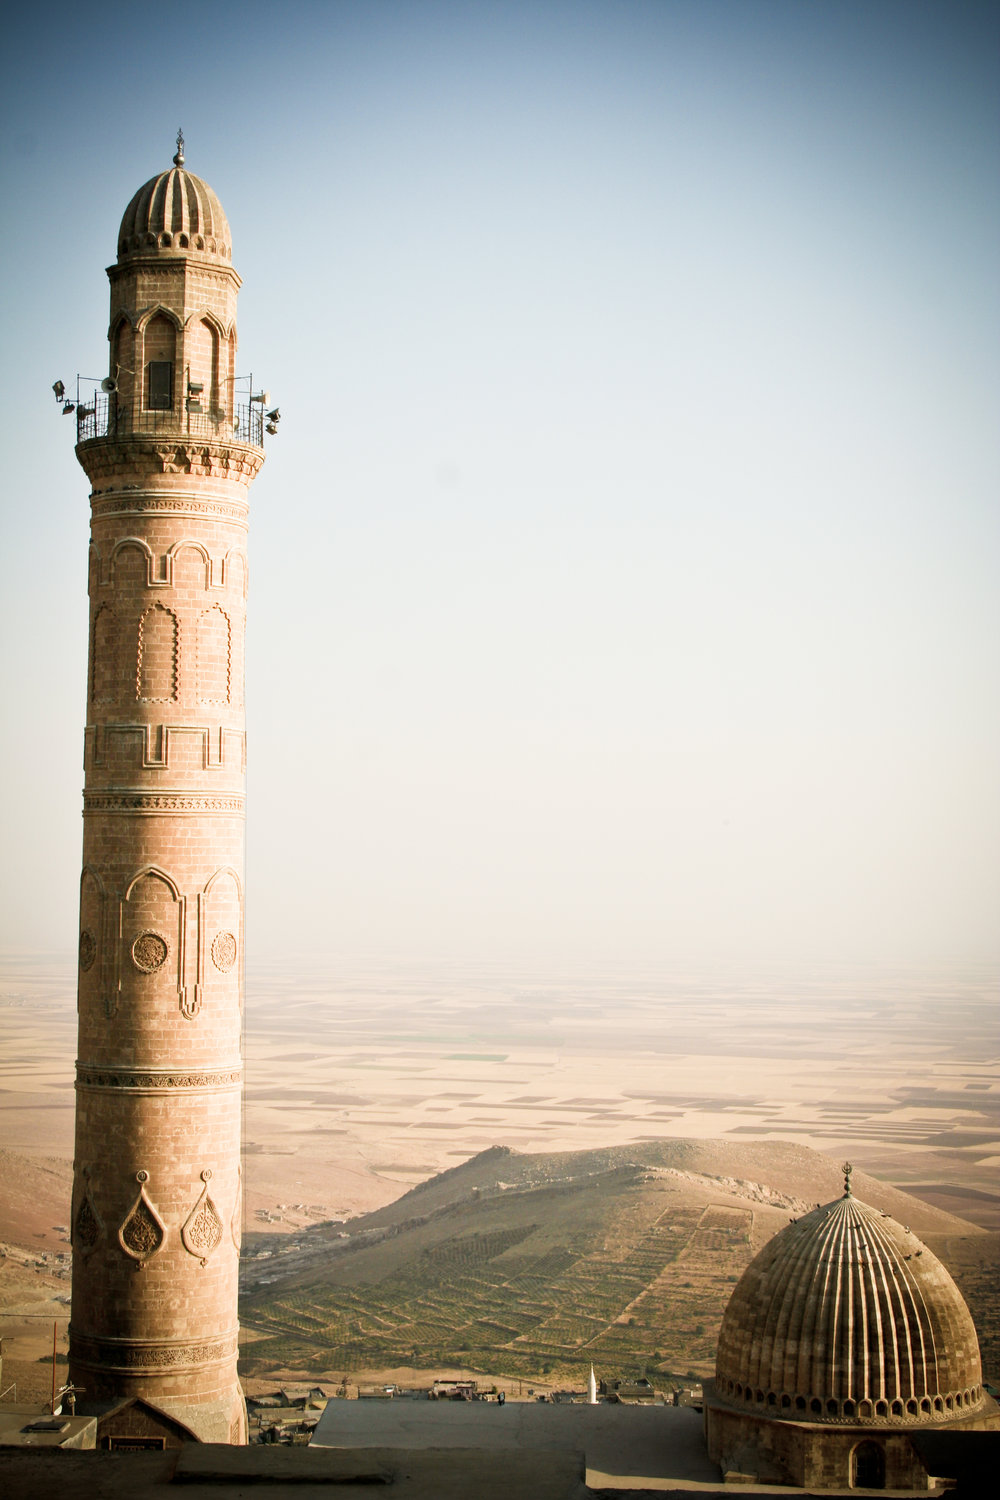 This is Mardin, a labyrinthine city of ancient charms and one of Ann's absolute favorite places on Earth. You can just see over the dusty horizon into Iraq, which is sadly now a war zone.